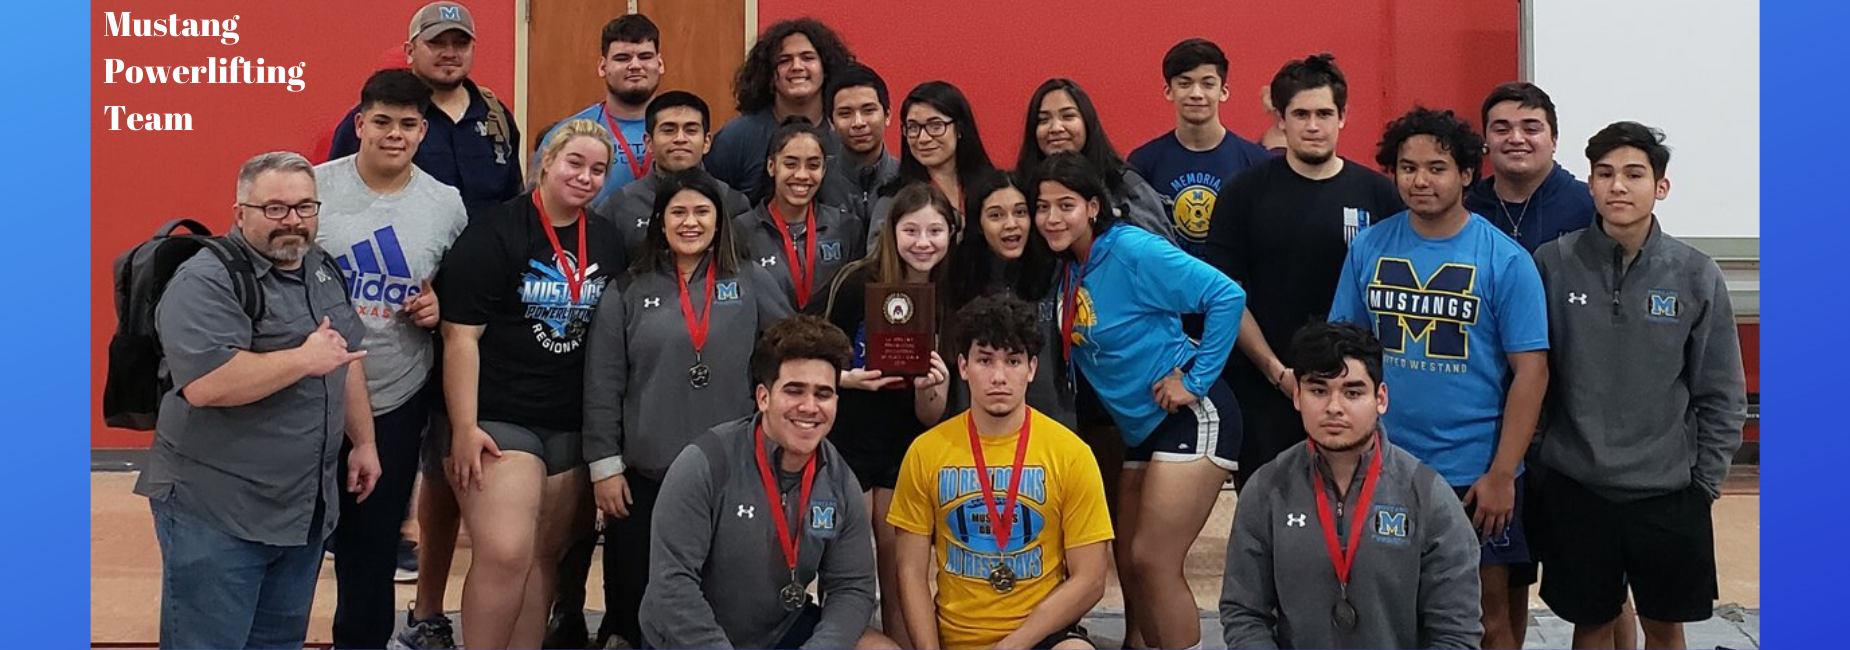 Mustang Powerlifting team with medals